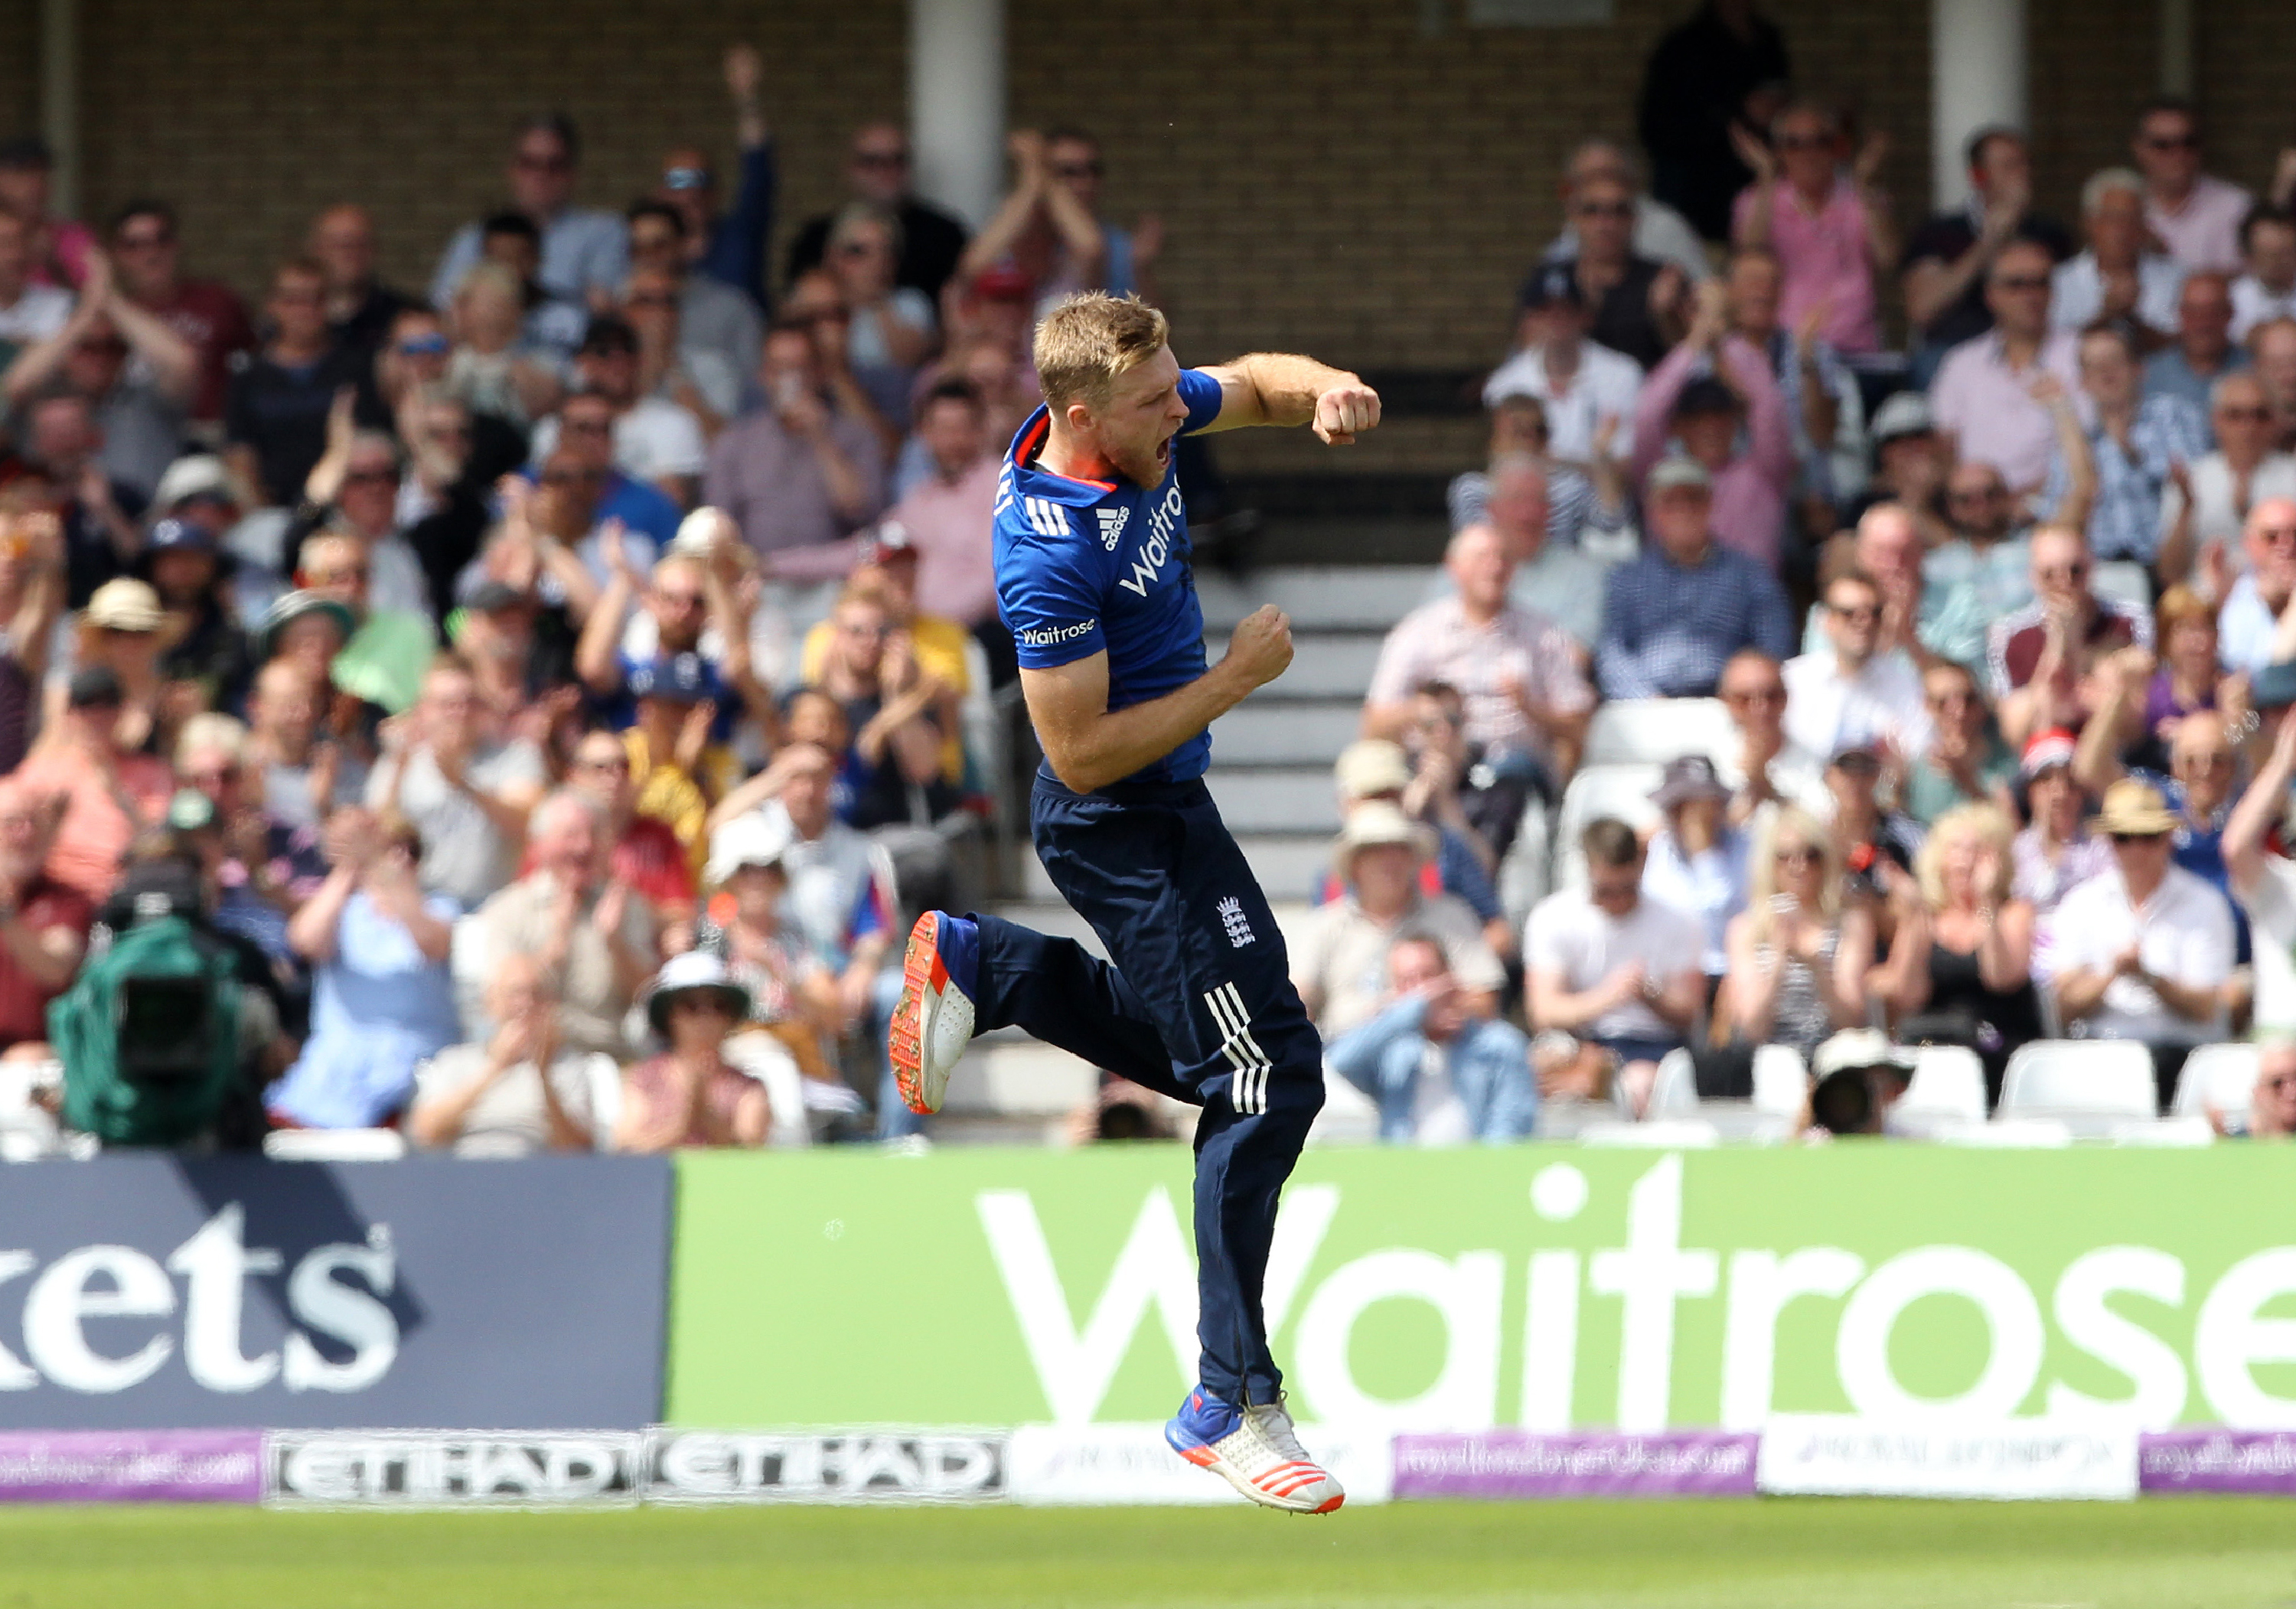 England's David Willey celebrates taking the wicket of Sri Lanka's Kusal Perera (not pictured) during play in the first one day international (ODI) cricket match between England and Sri Lanka at Trent Bridge cricket ground in Nottingham, central England, on June 21, 2016. England captain Eoin Morgan won the toss and elected to field against Sri Lanka in the first one-day international at Trent Bridge on Tuesday. / AFP PHOTO / Lindsey PARNABY